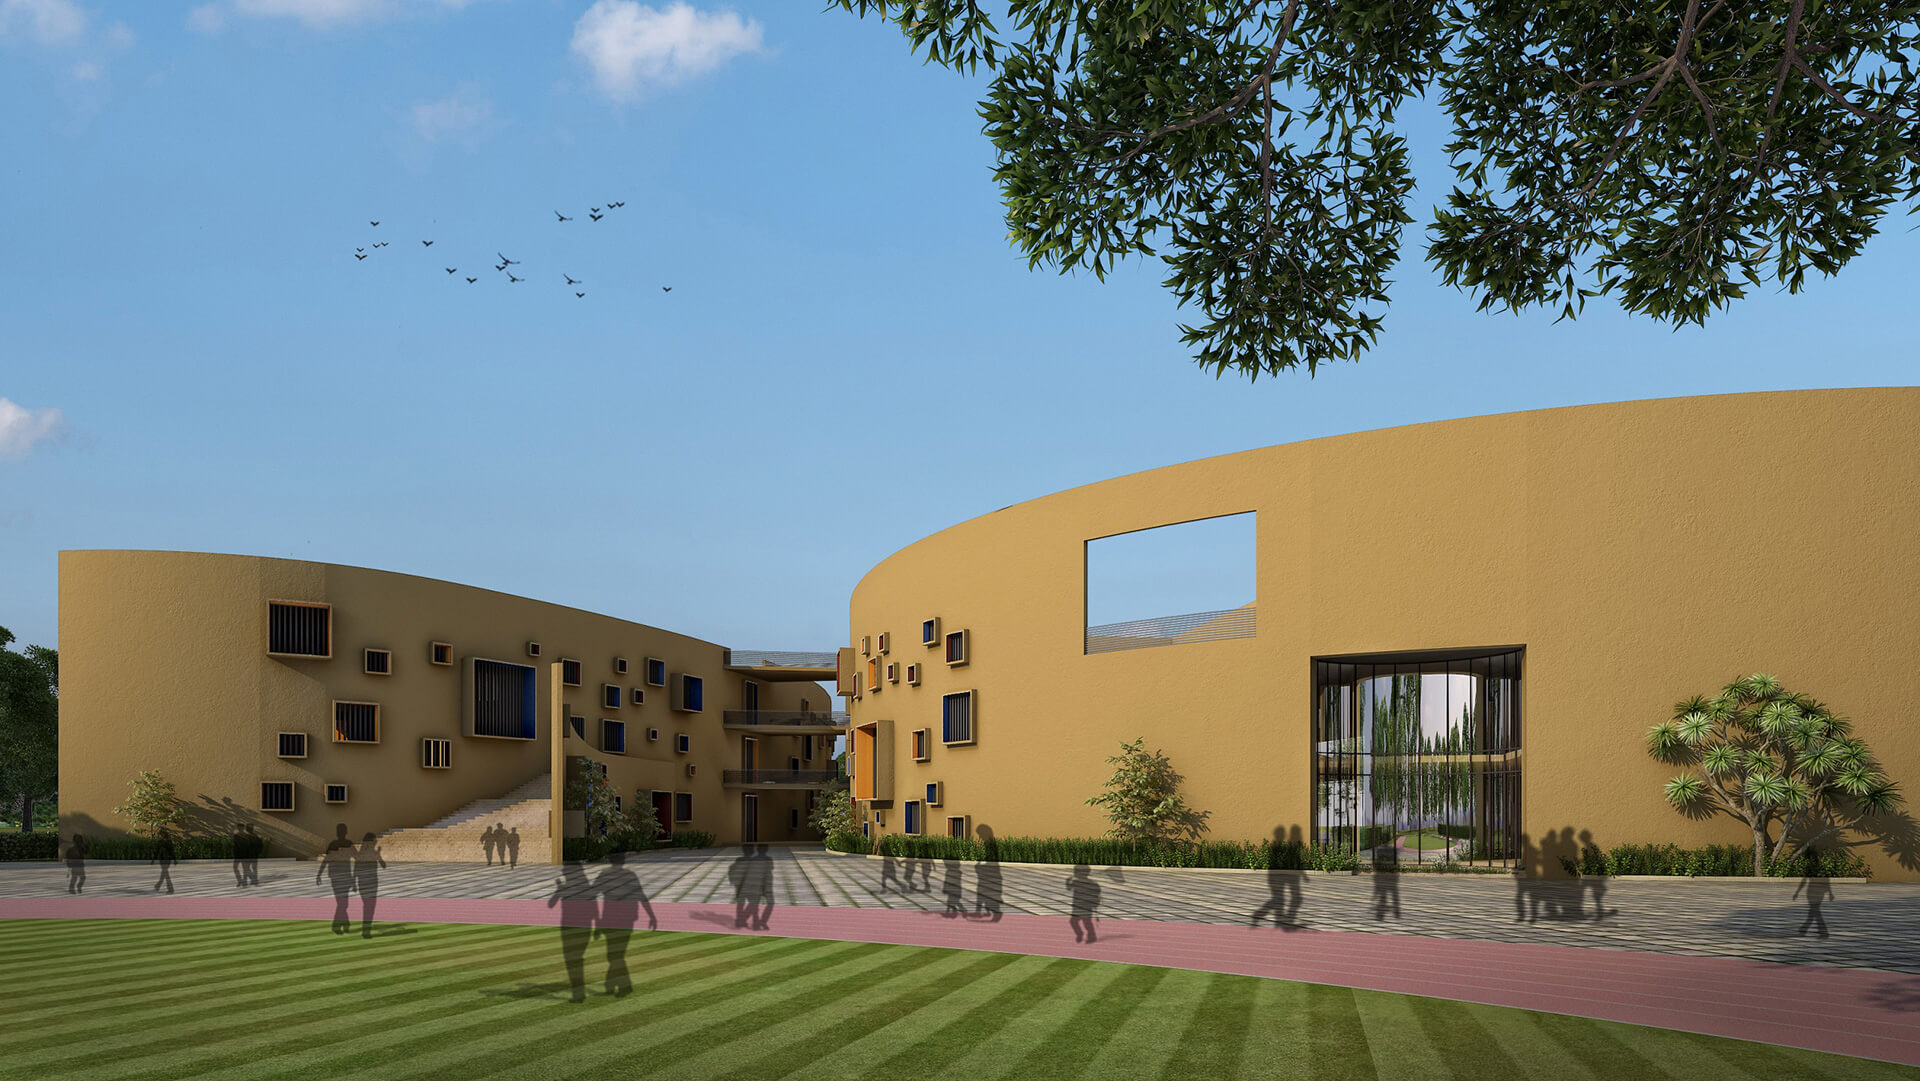 Central circulation spaces at the Shree School in Raipur | Shree School in Raipur by Sanjay Puri Architects | STIRworld